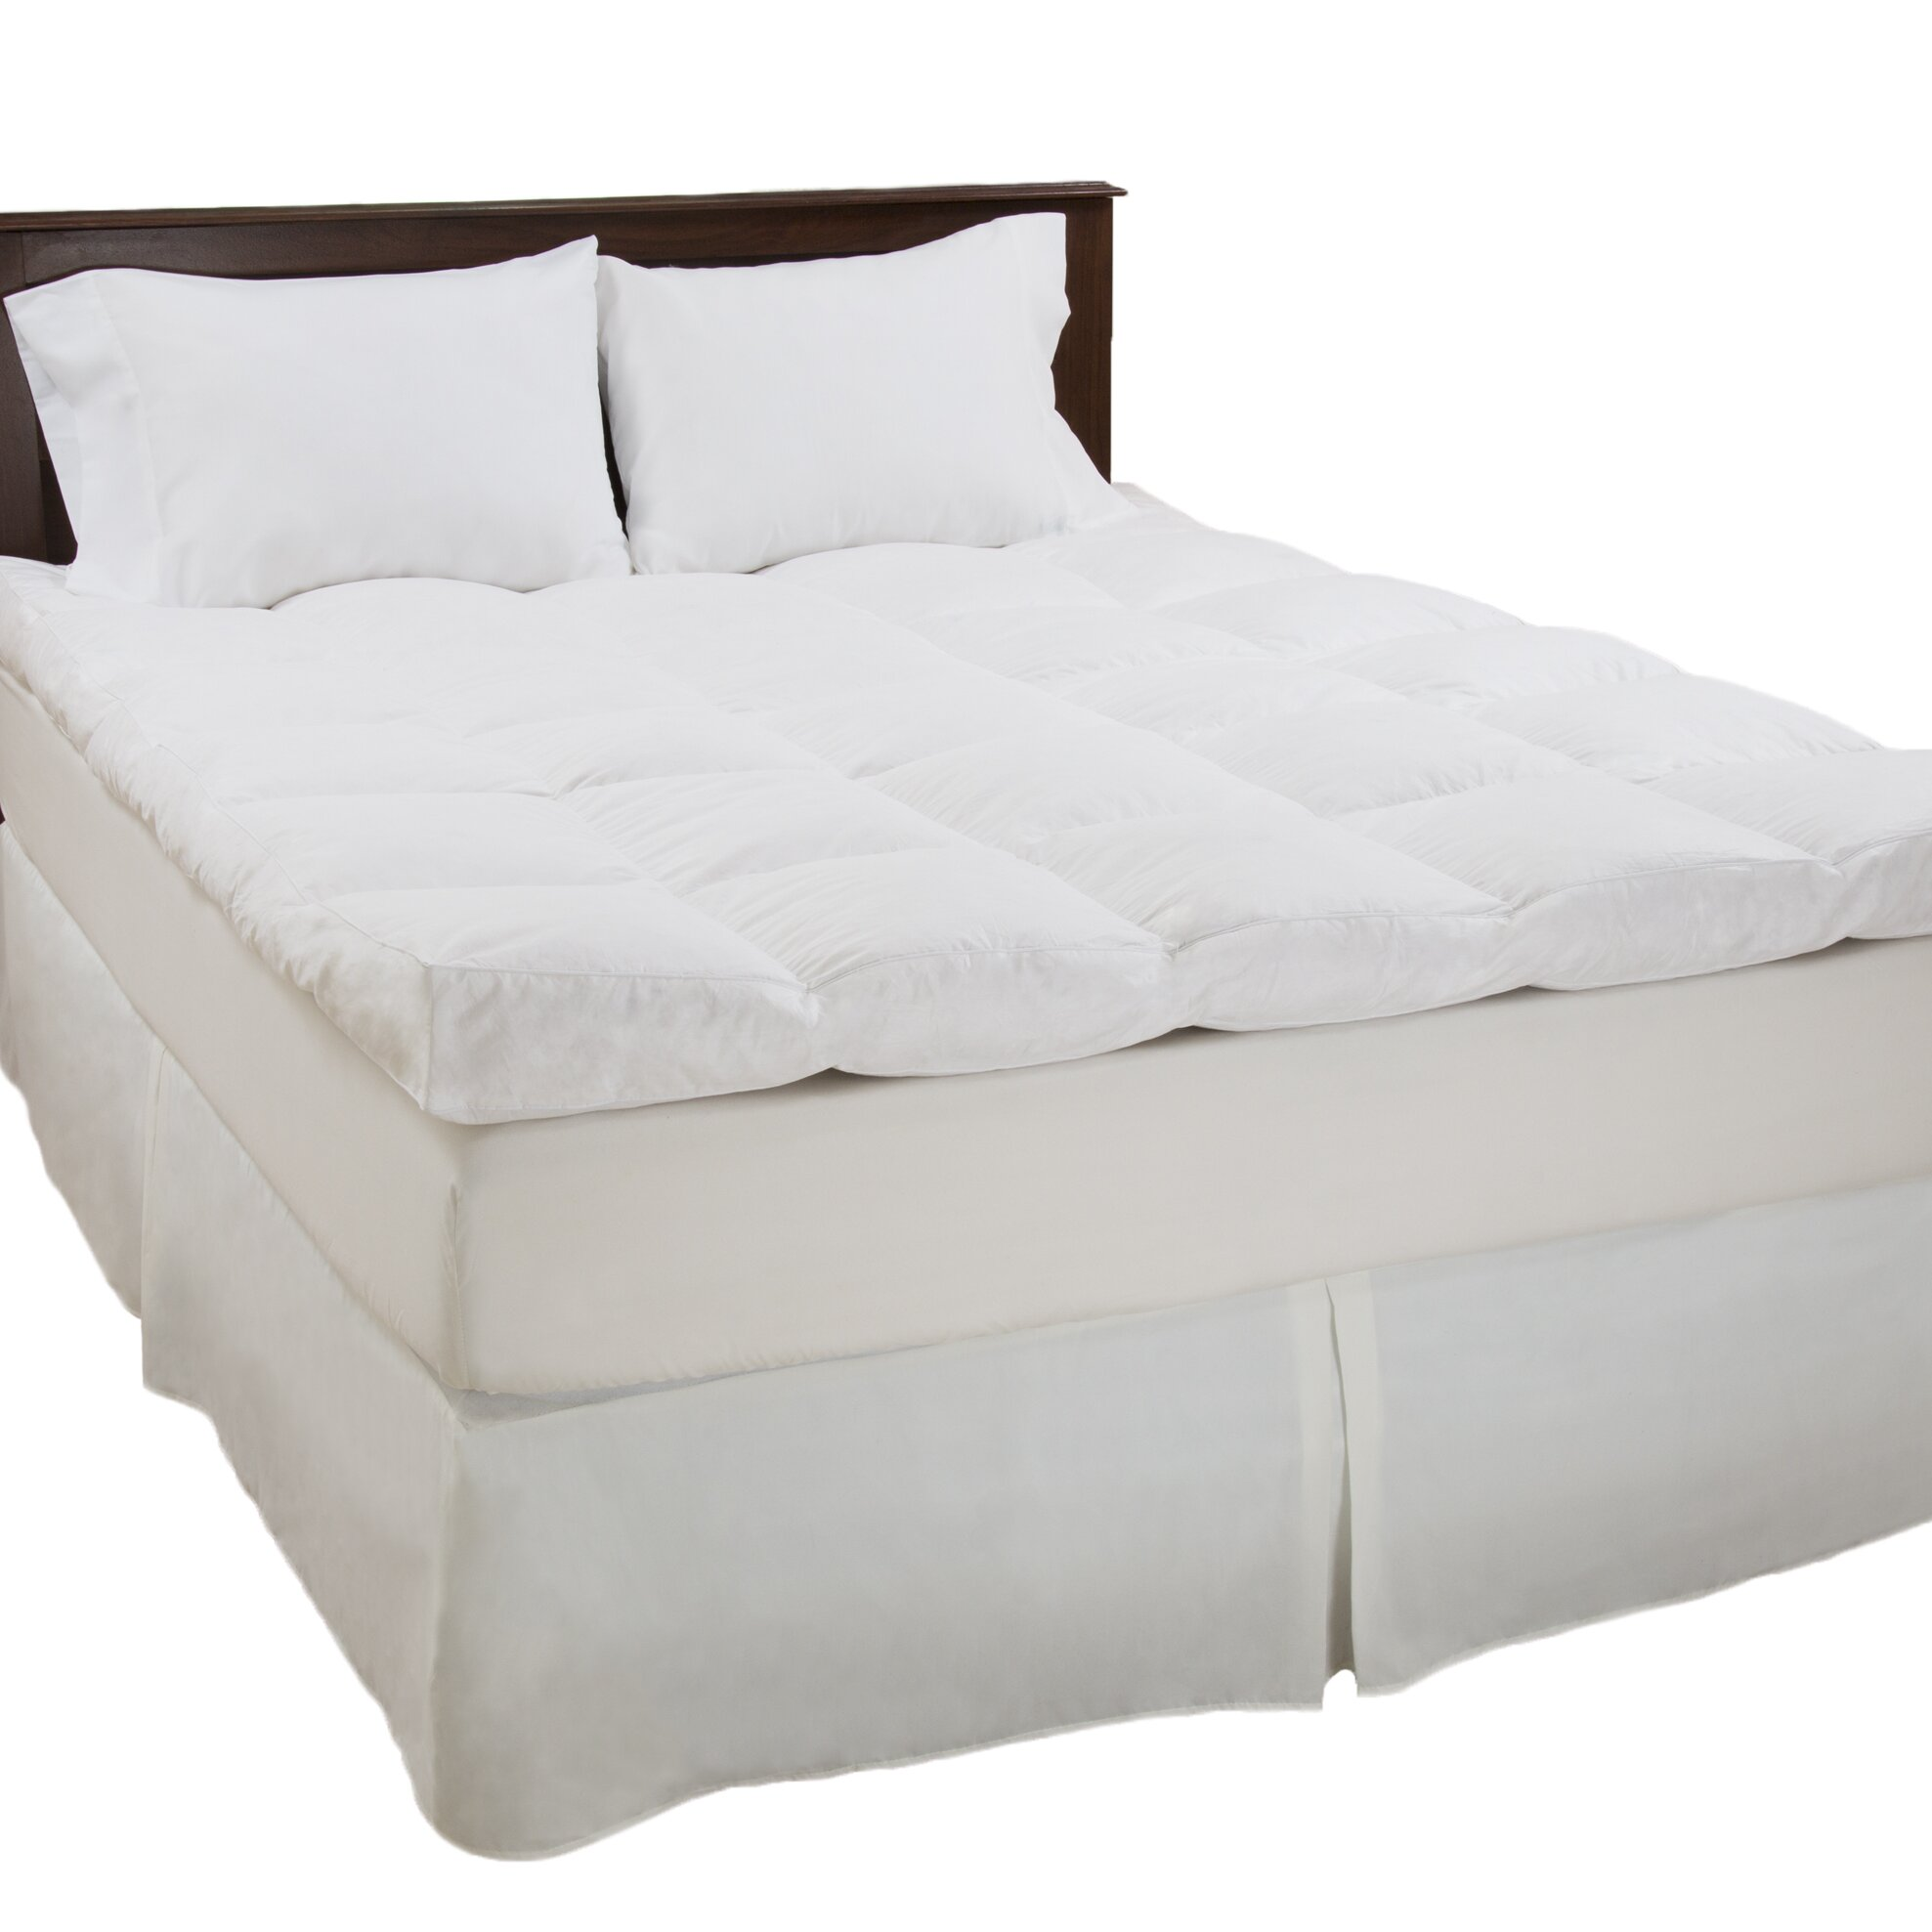 "PLYH 4"" Down & Duck Feather Mattress Topper"